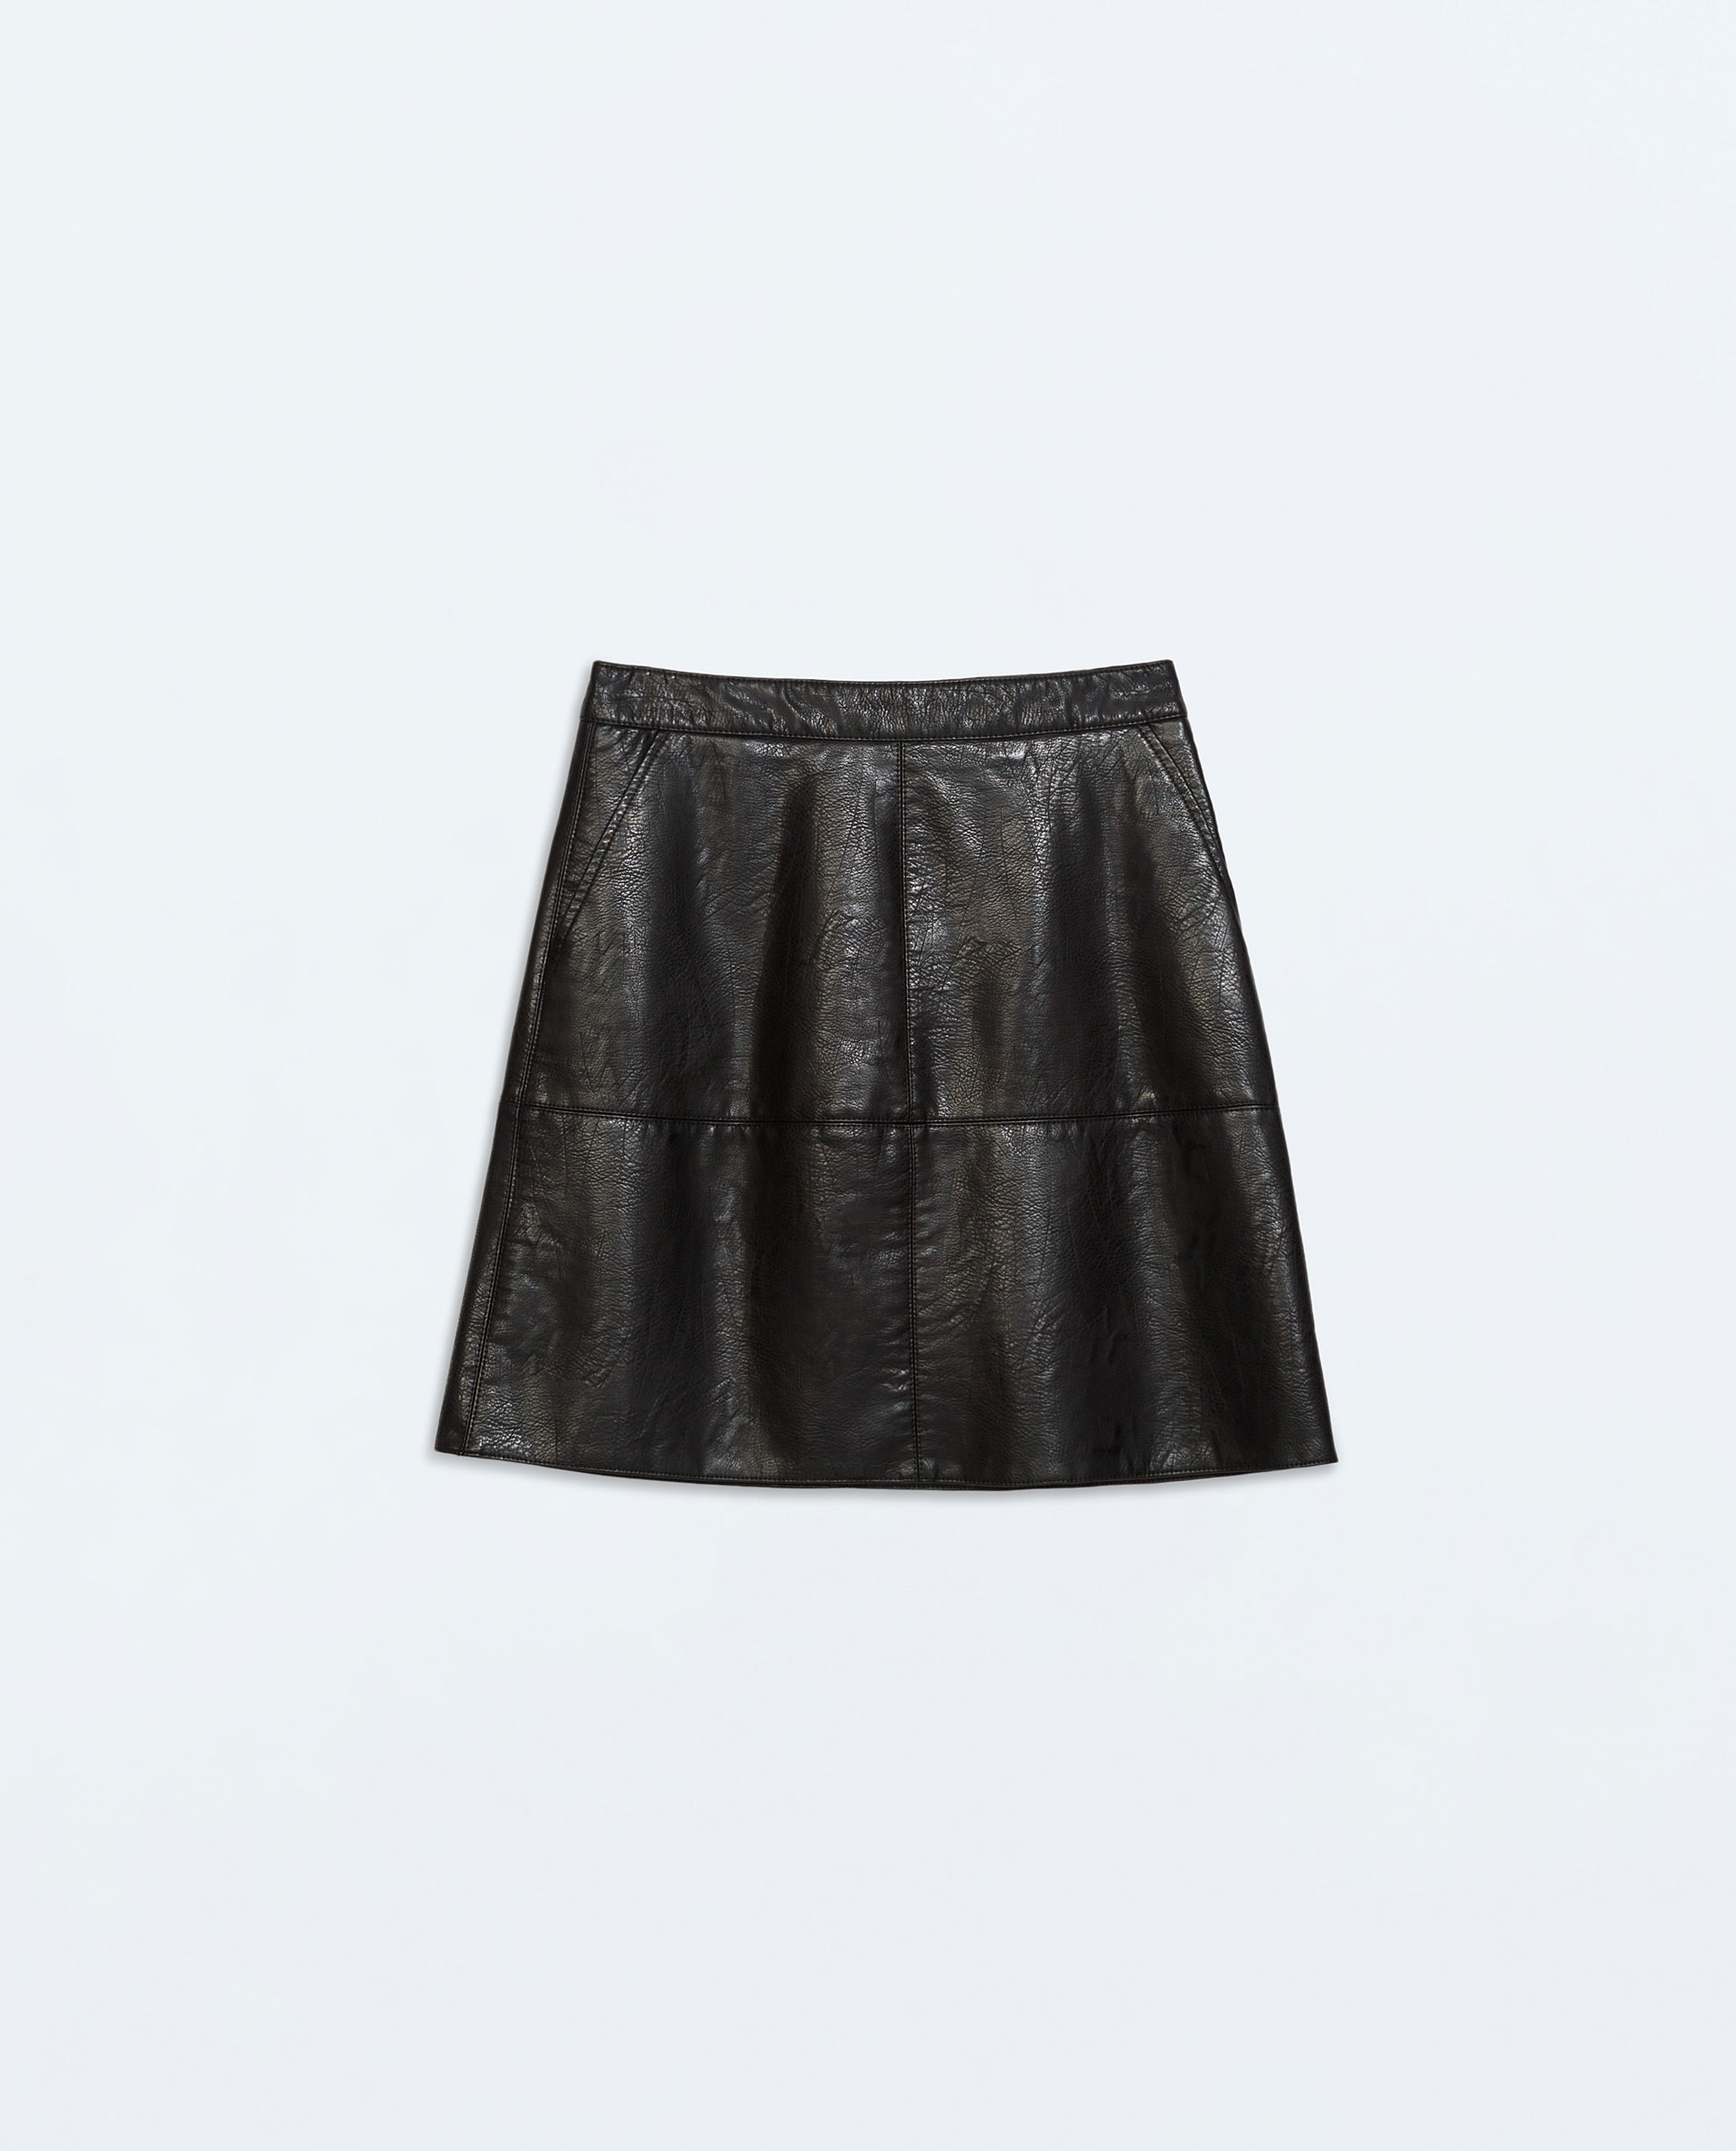 Zara A-Line Faux Leather Skirt in Black | Lyst